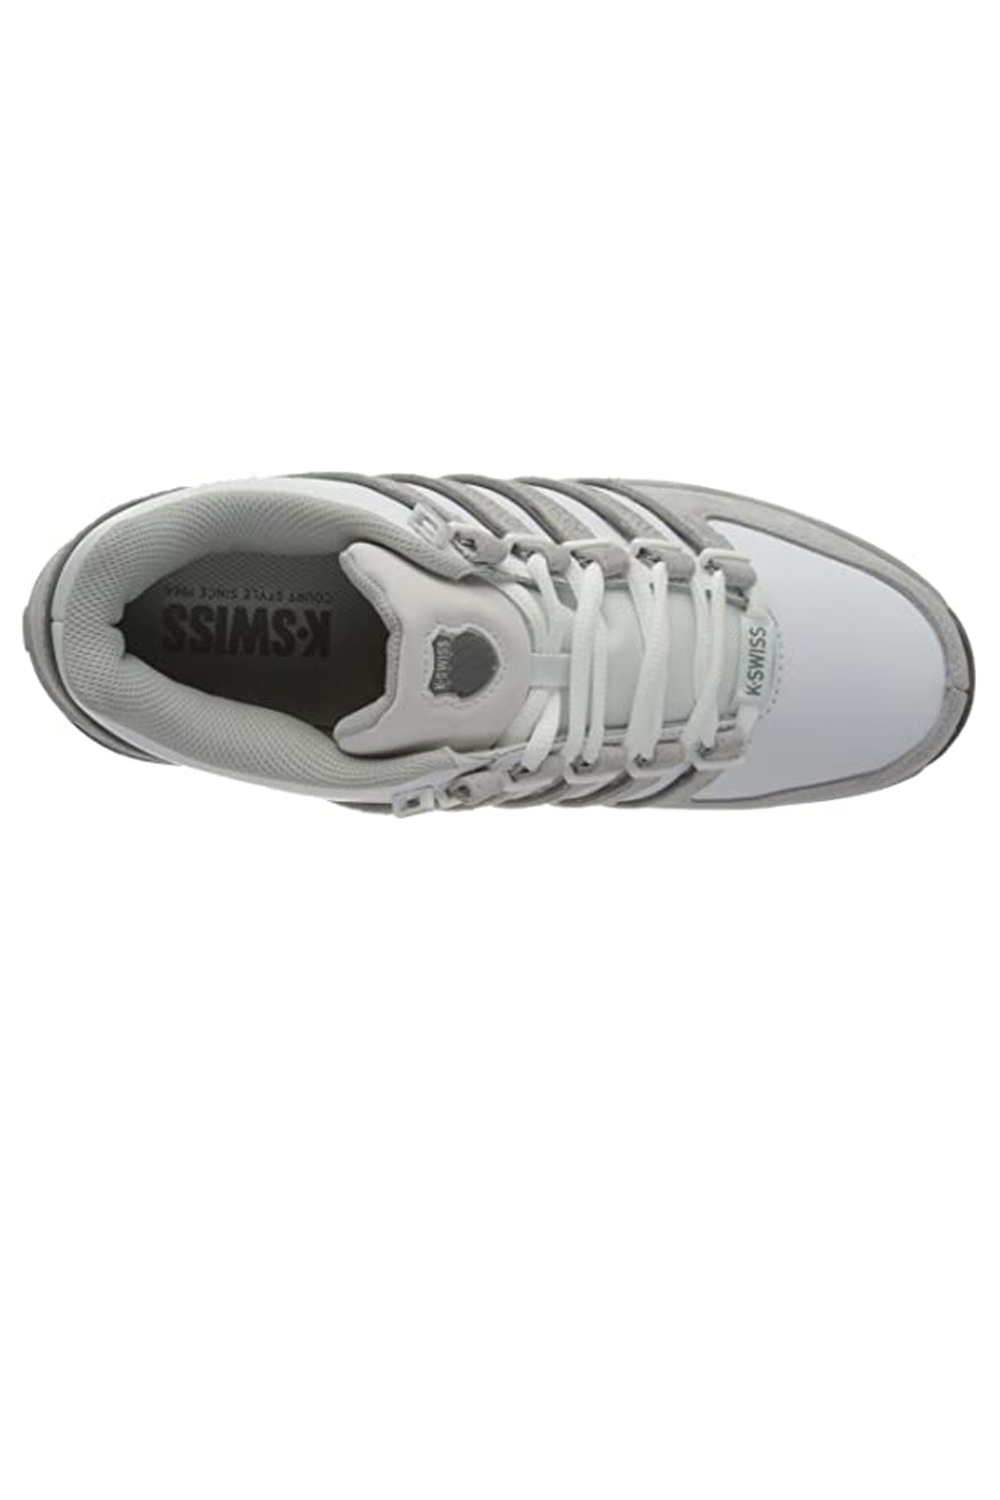 thumbnail 9 - K-Swiss Mens Comfortable Low Top Classic Leather Suede Rinzler Trainers Sneakers